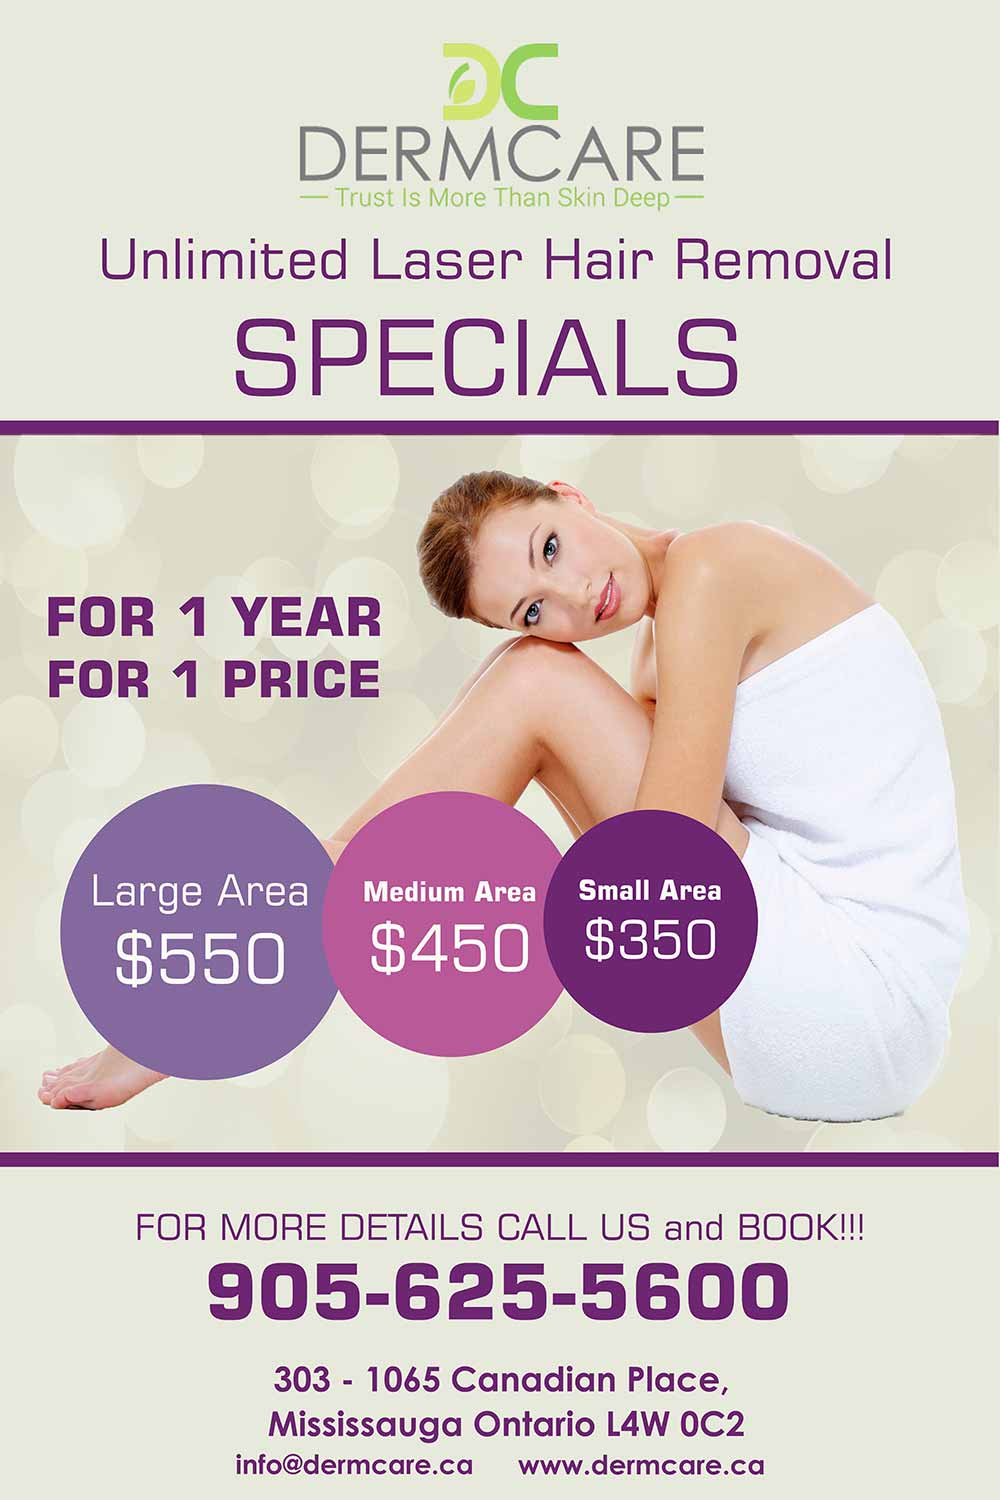 Unlimited Laser Hair Removal at DermCare